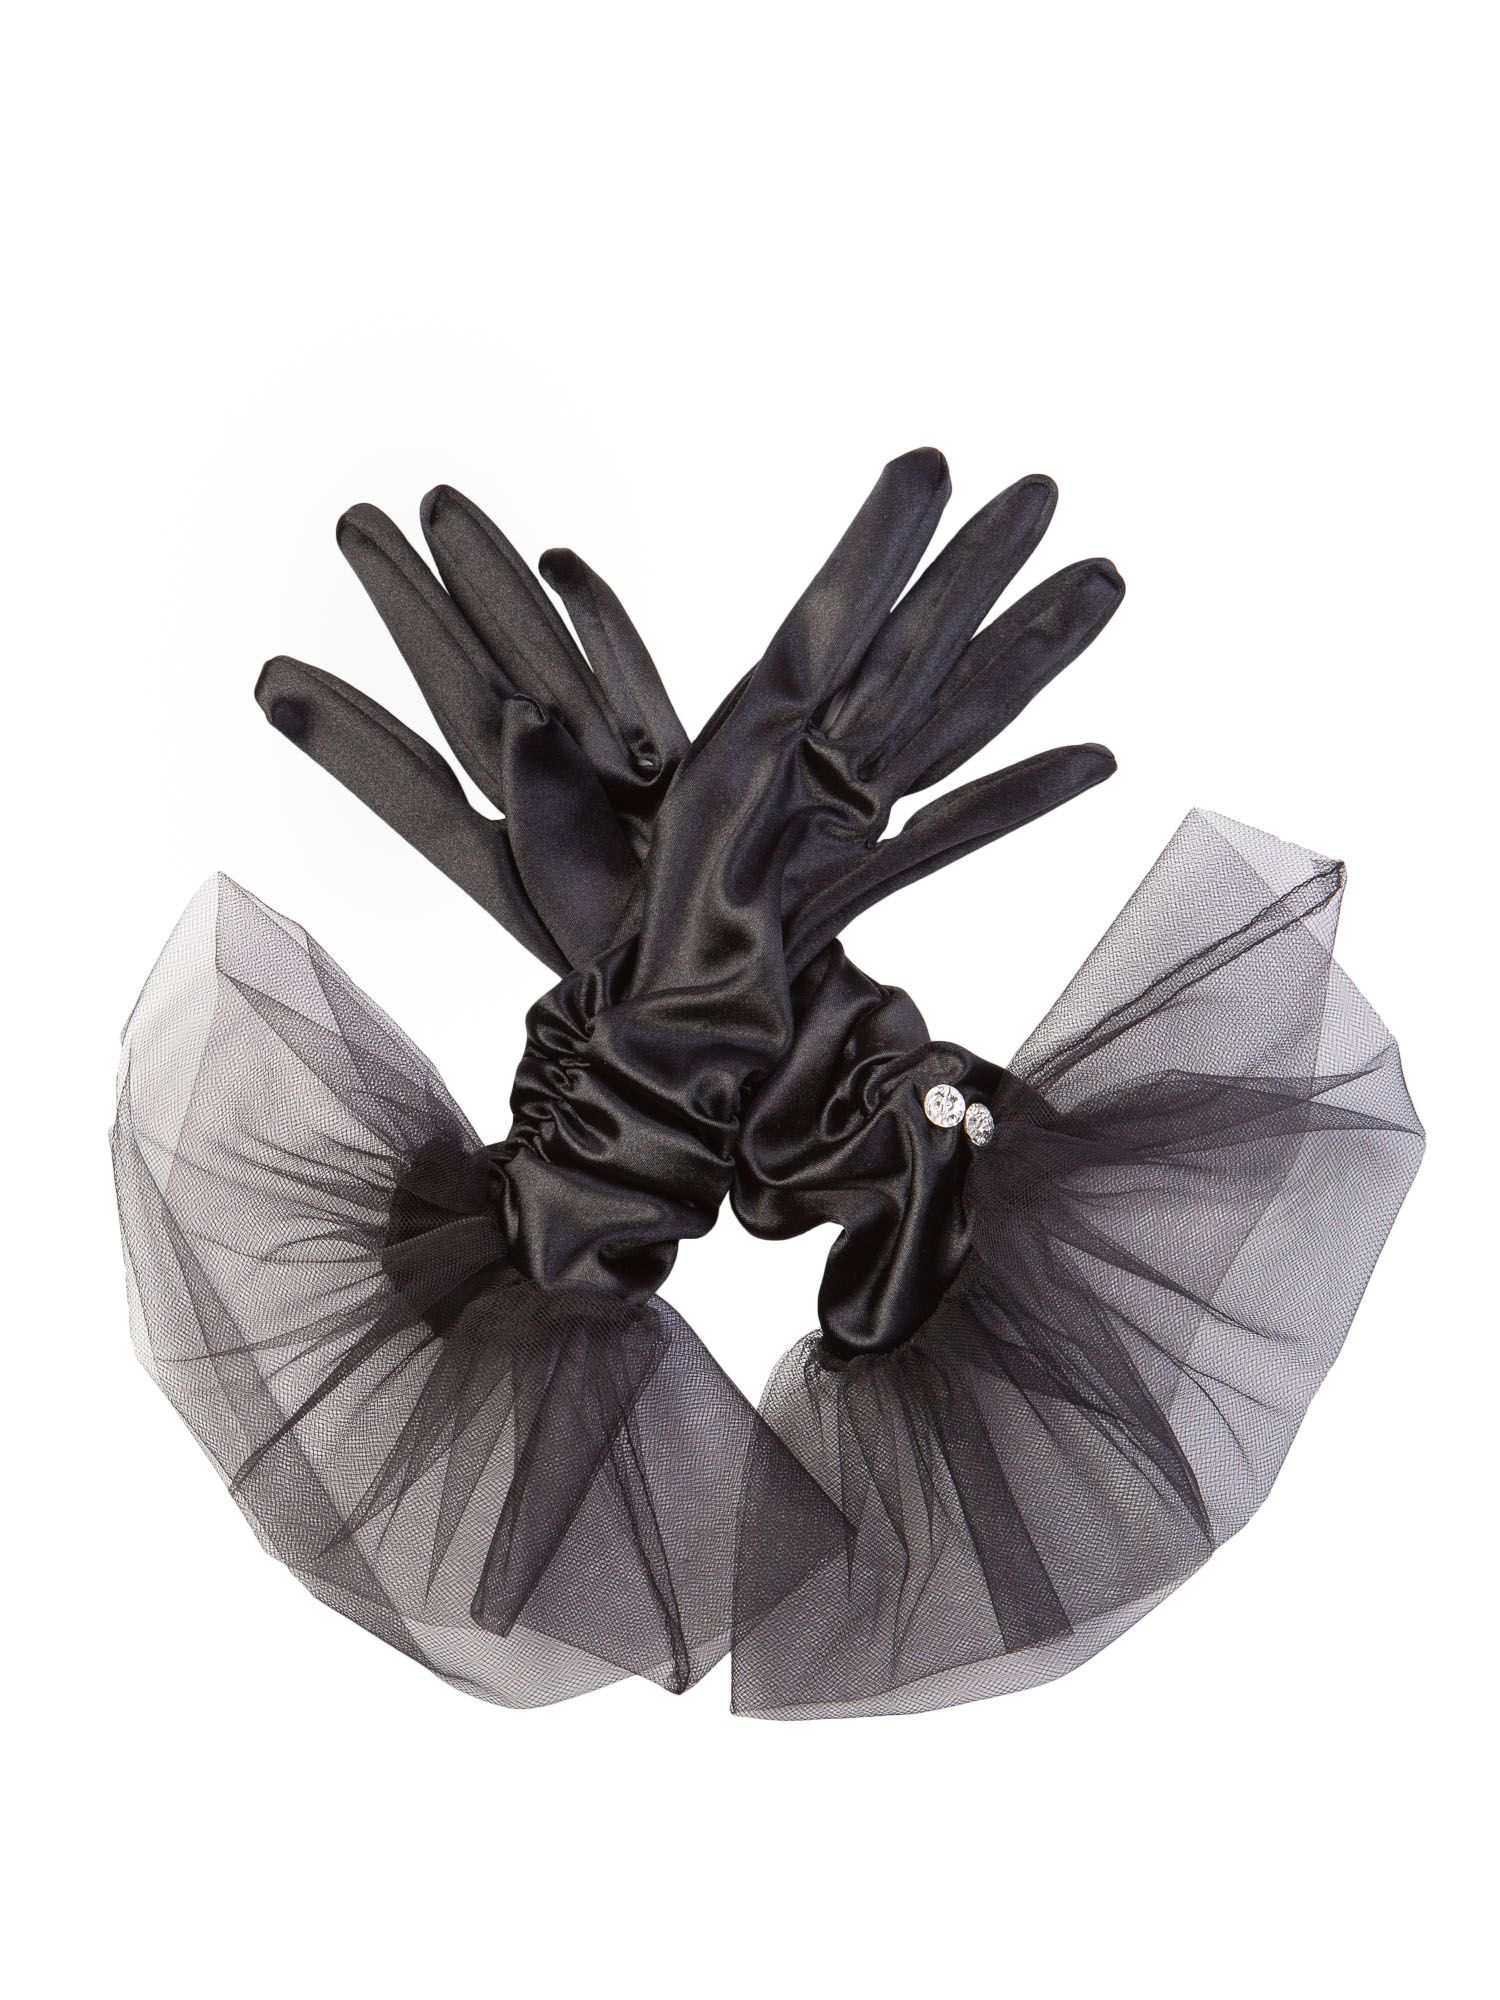 Vintage Style Gloves Cornelia James Tatiana Satin Gloves £90.00 AT vintagedancer.com